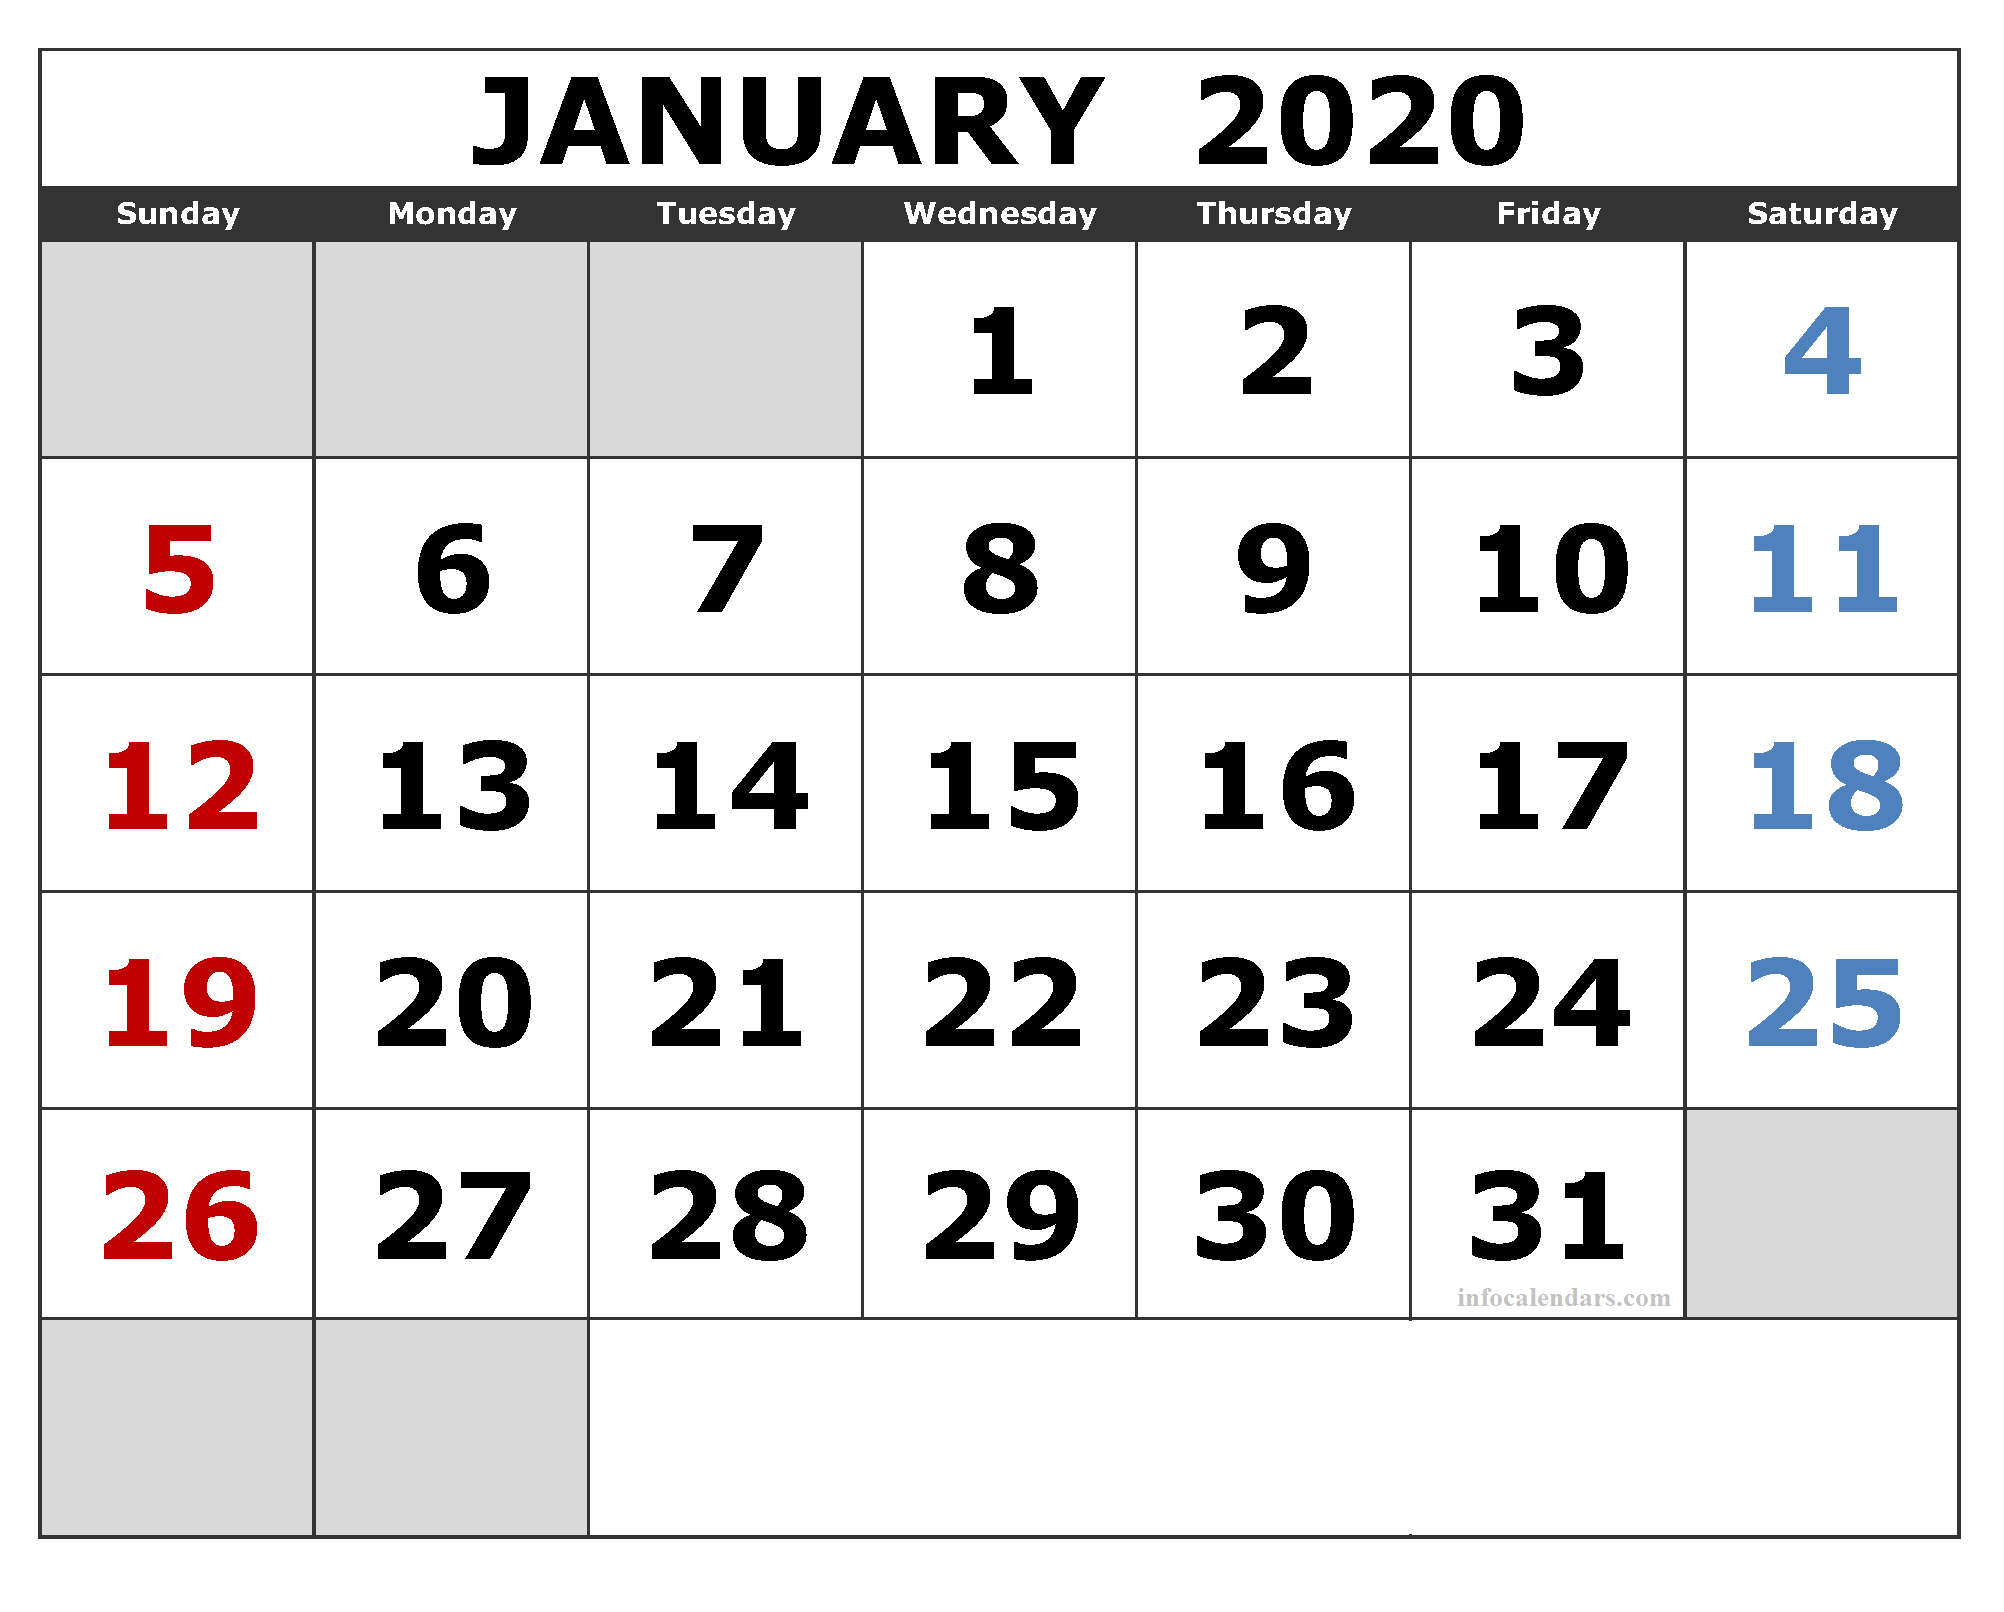 January 2020 Calendar With Holidays PDF